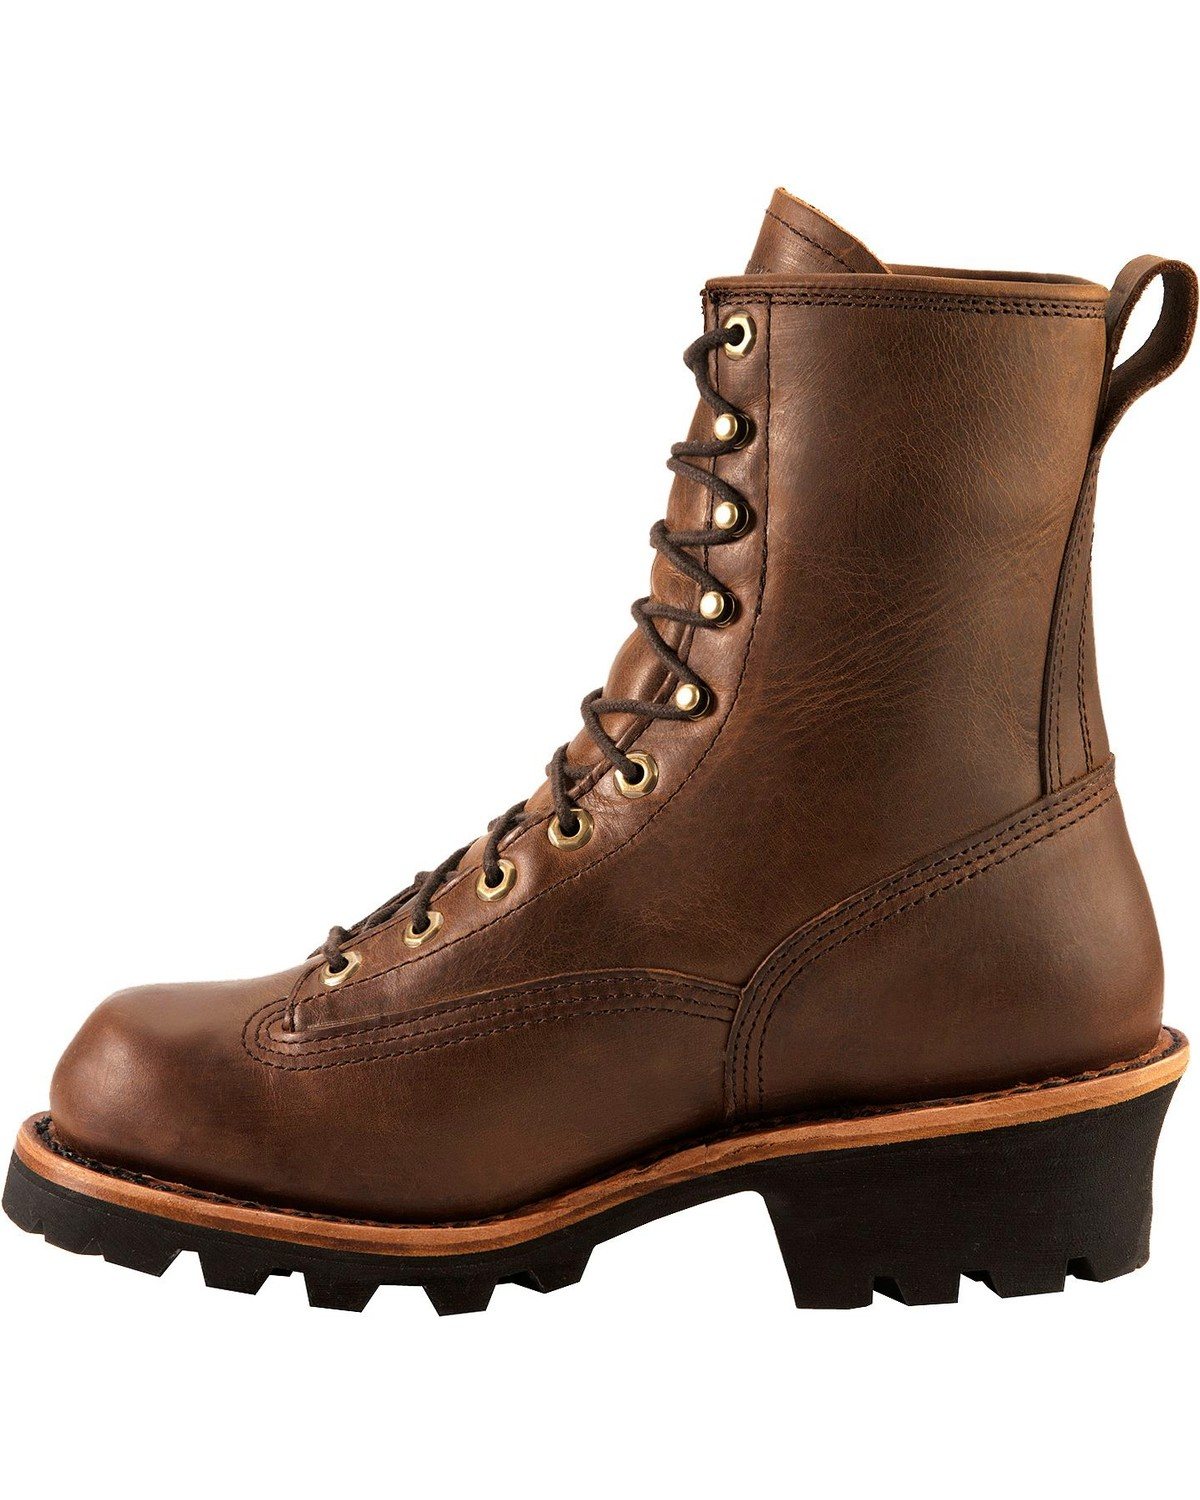 Chippewa Men S Waterproof Logger Work Boots Boot Barn